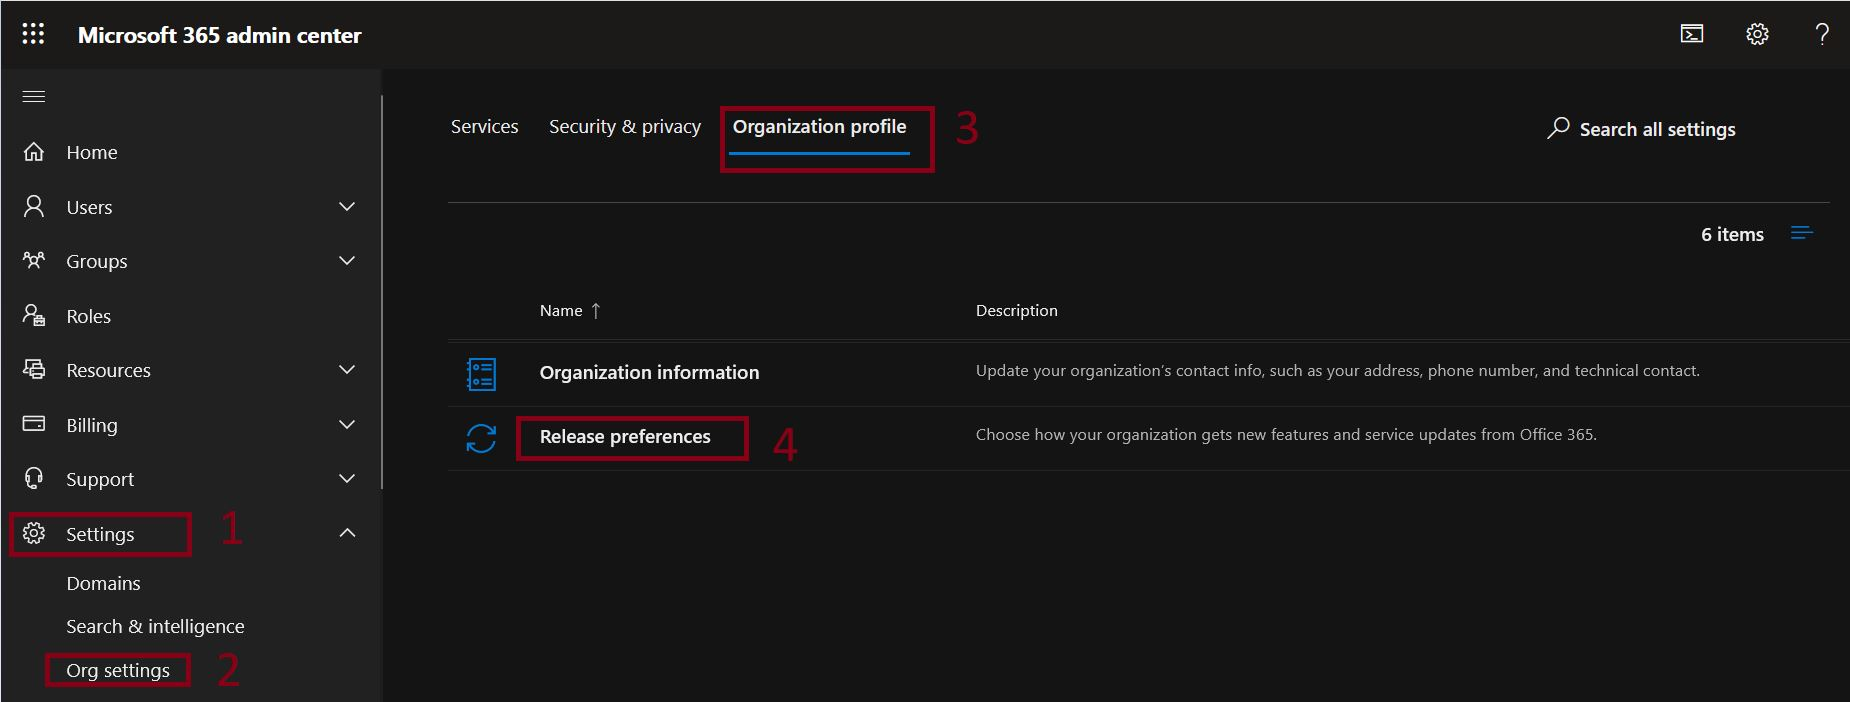 Choose how your organization gets new features and service updates from ‎Office 365